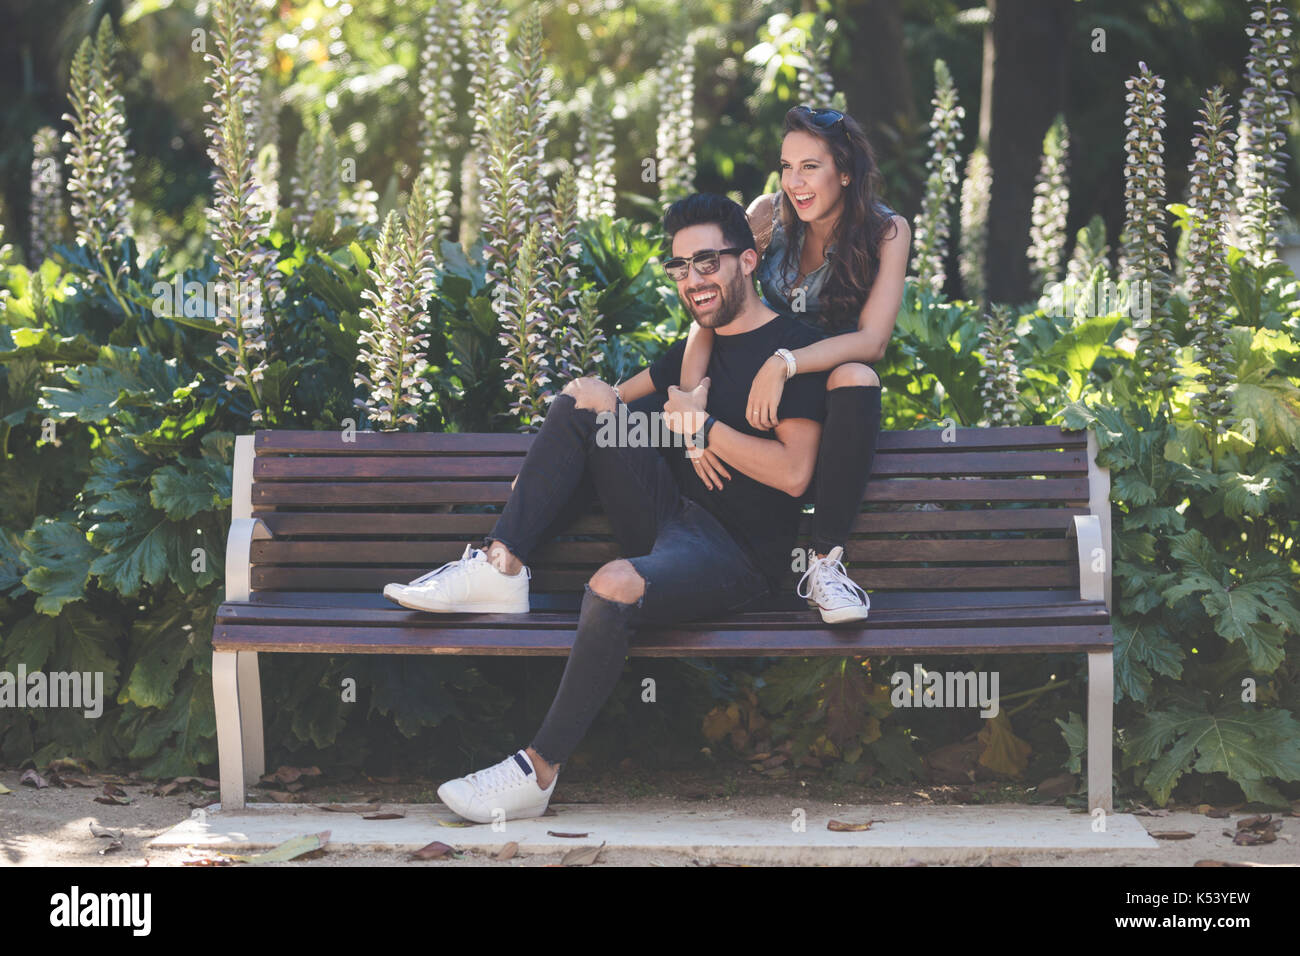 Portrait of laughing couple sitting together on bench - Stock Image